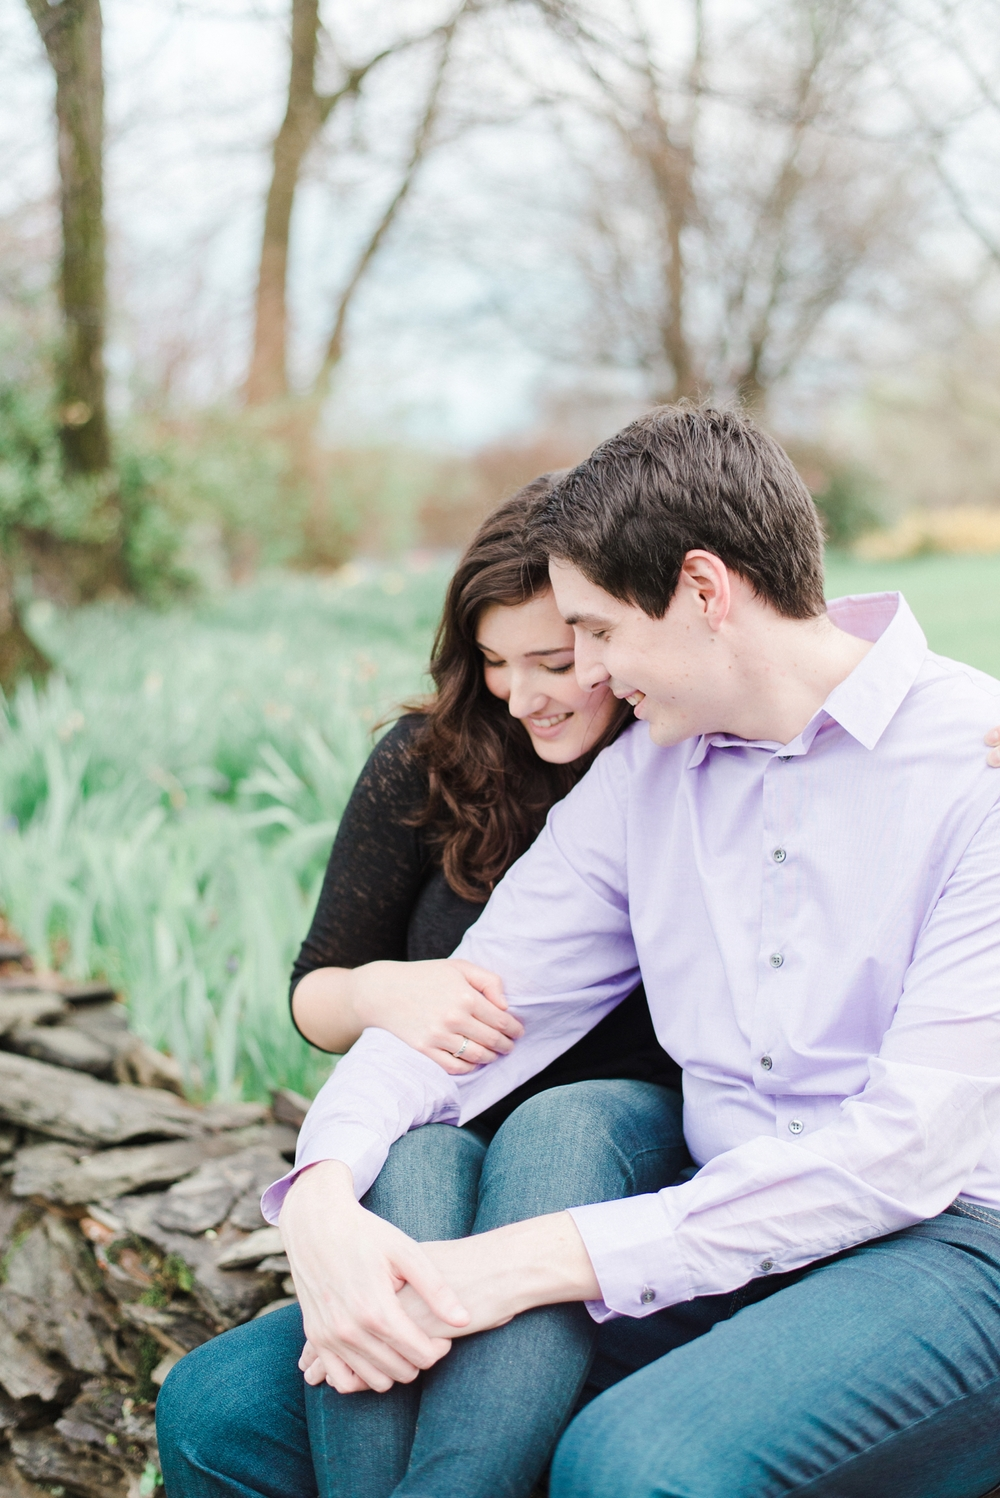 virginia_wedding_photographer_charlottesville_engagemnet_ashlawn_highland_0004.jpg